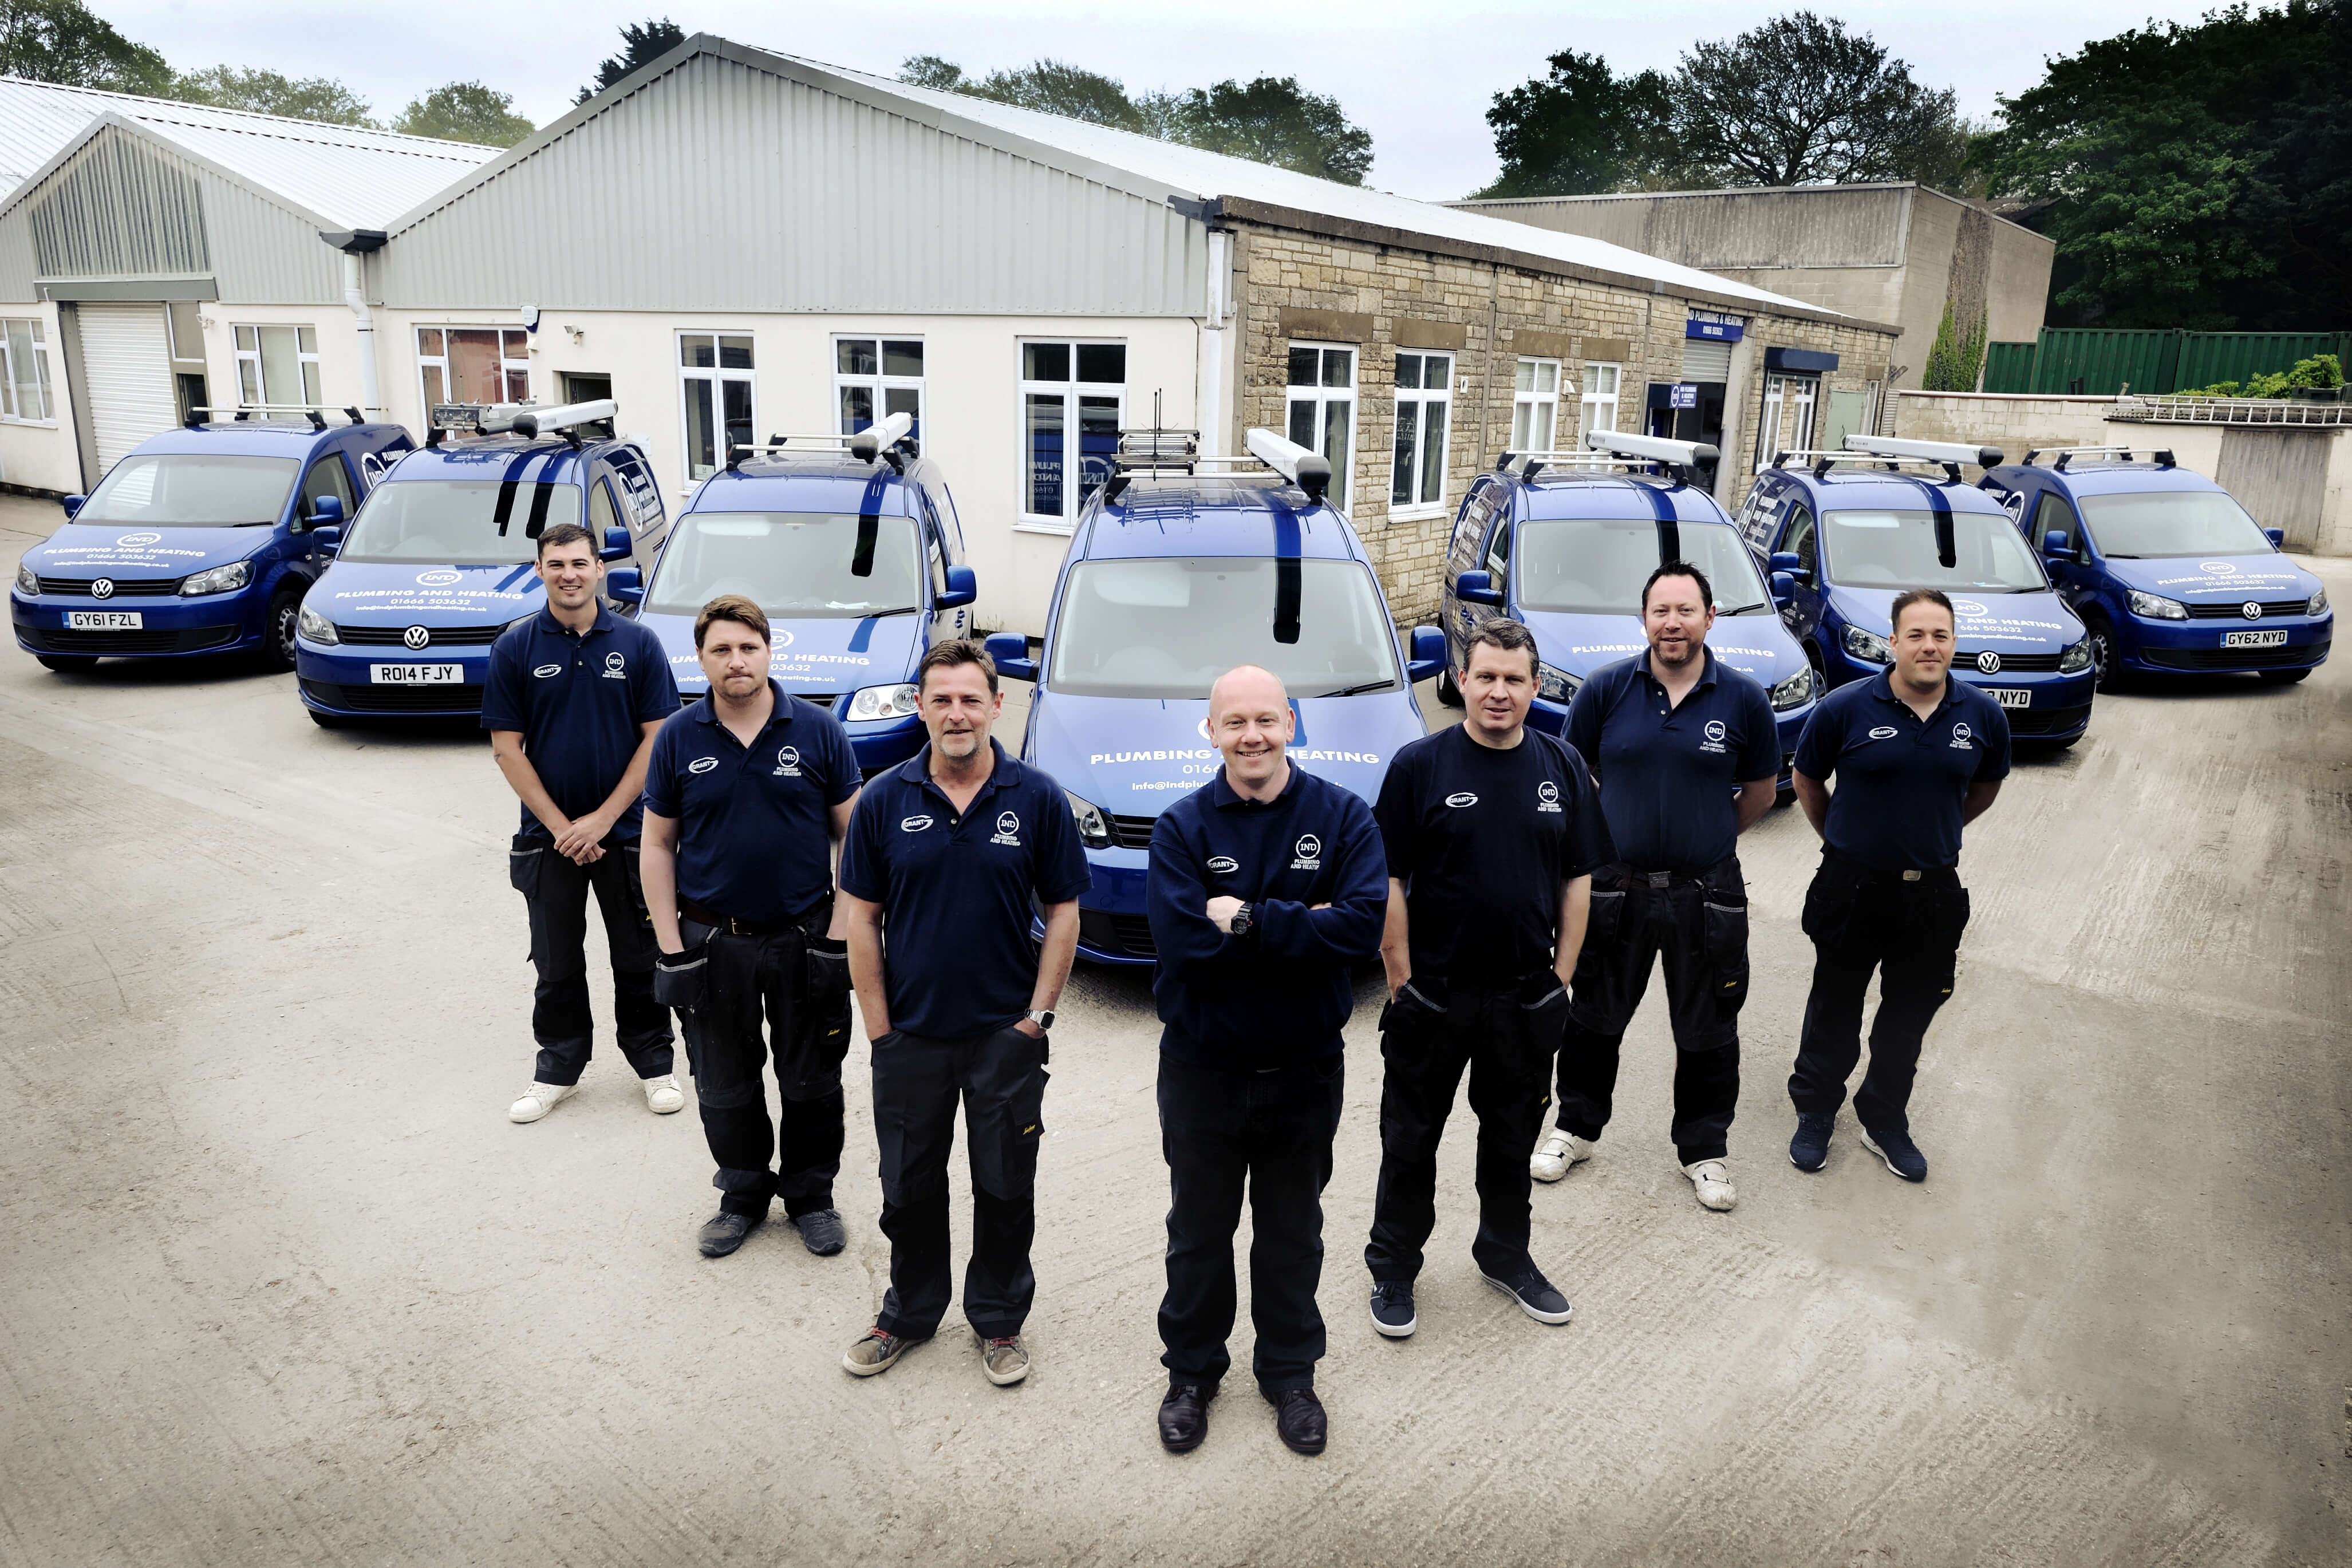 IND plumbing & heating Tetbury Best Plumbers in the county